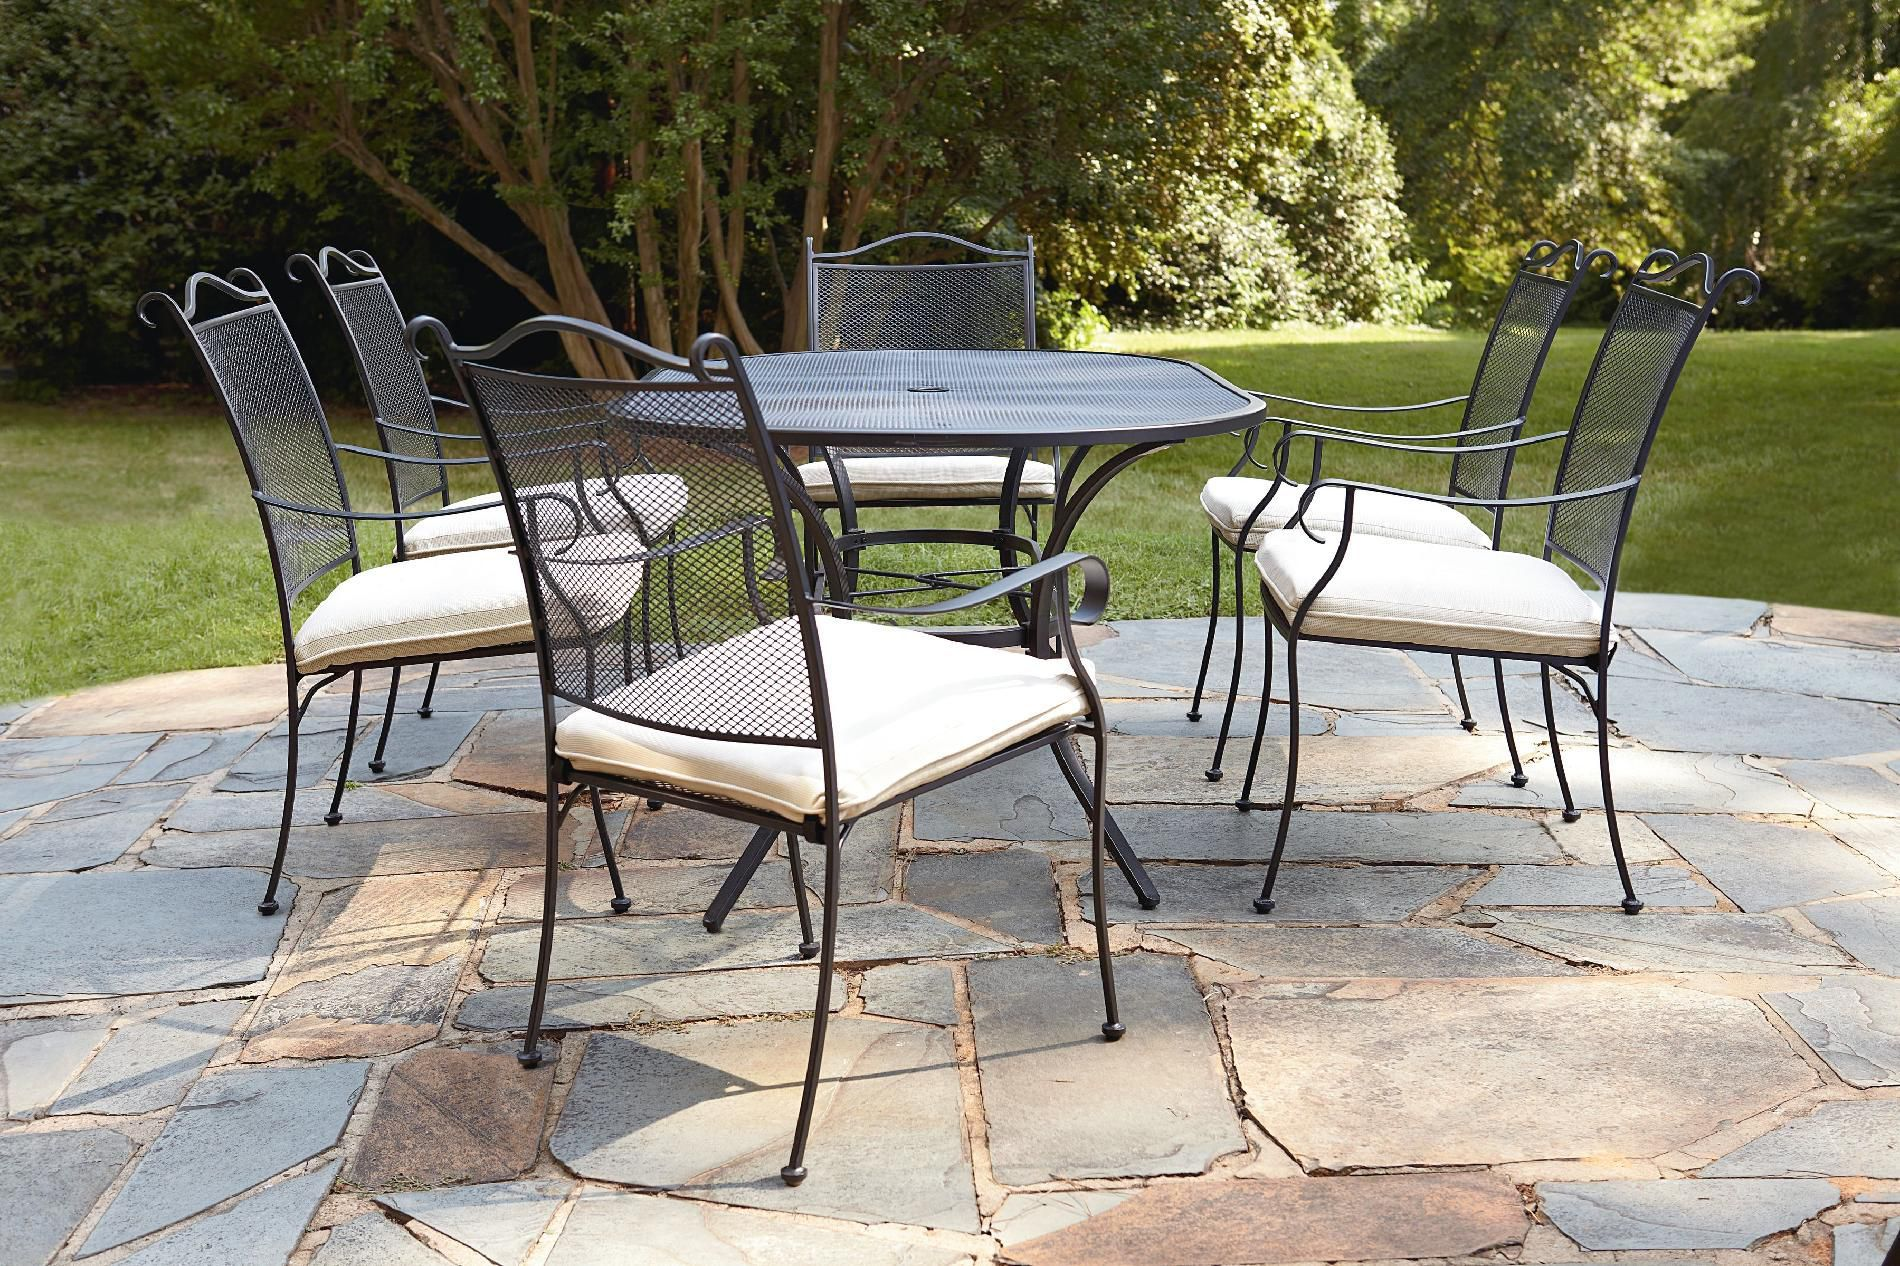 Pin de Sally Keidel en Outdoor table sets | Pinterest